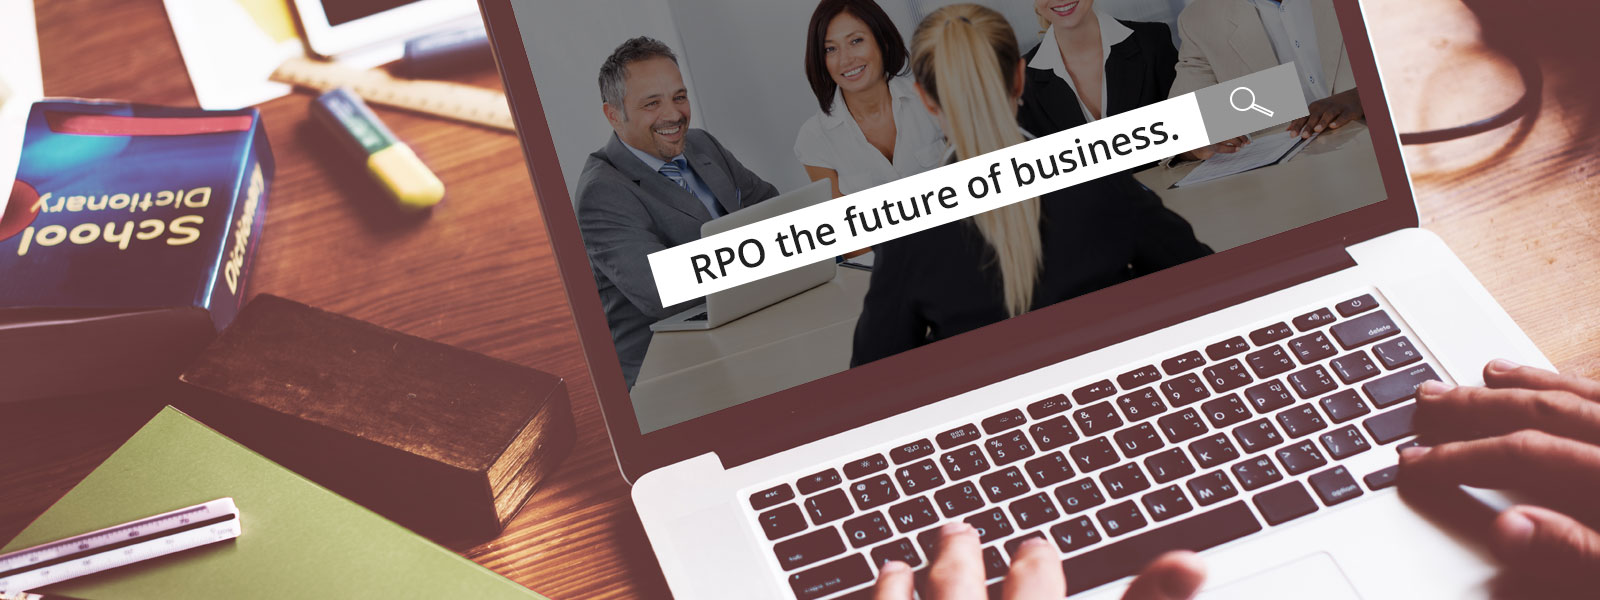 RPO the Future Business - Glocal RPO Blog